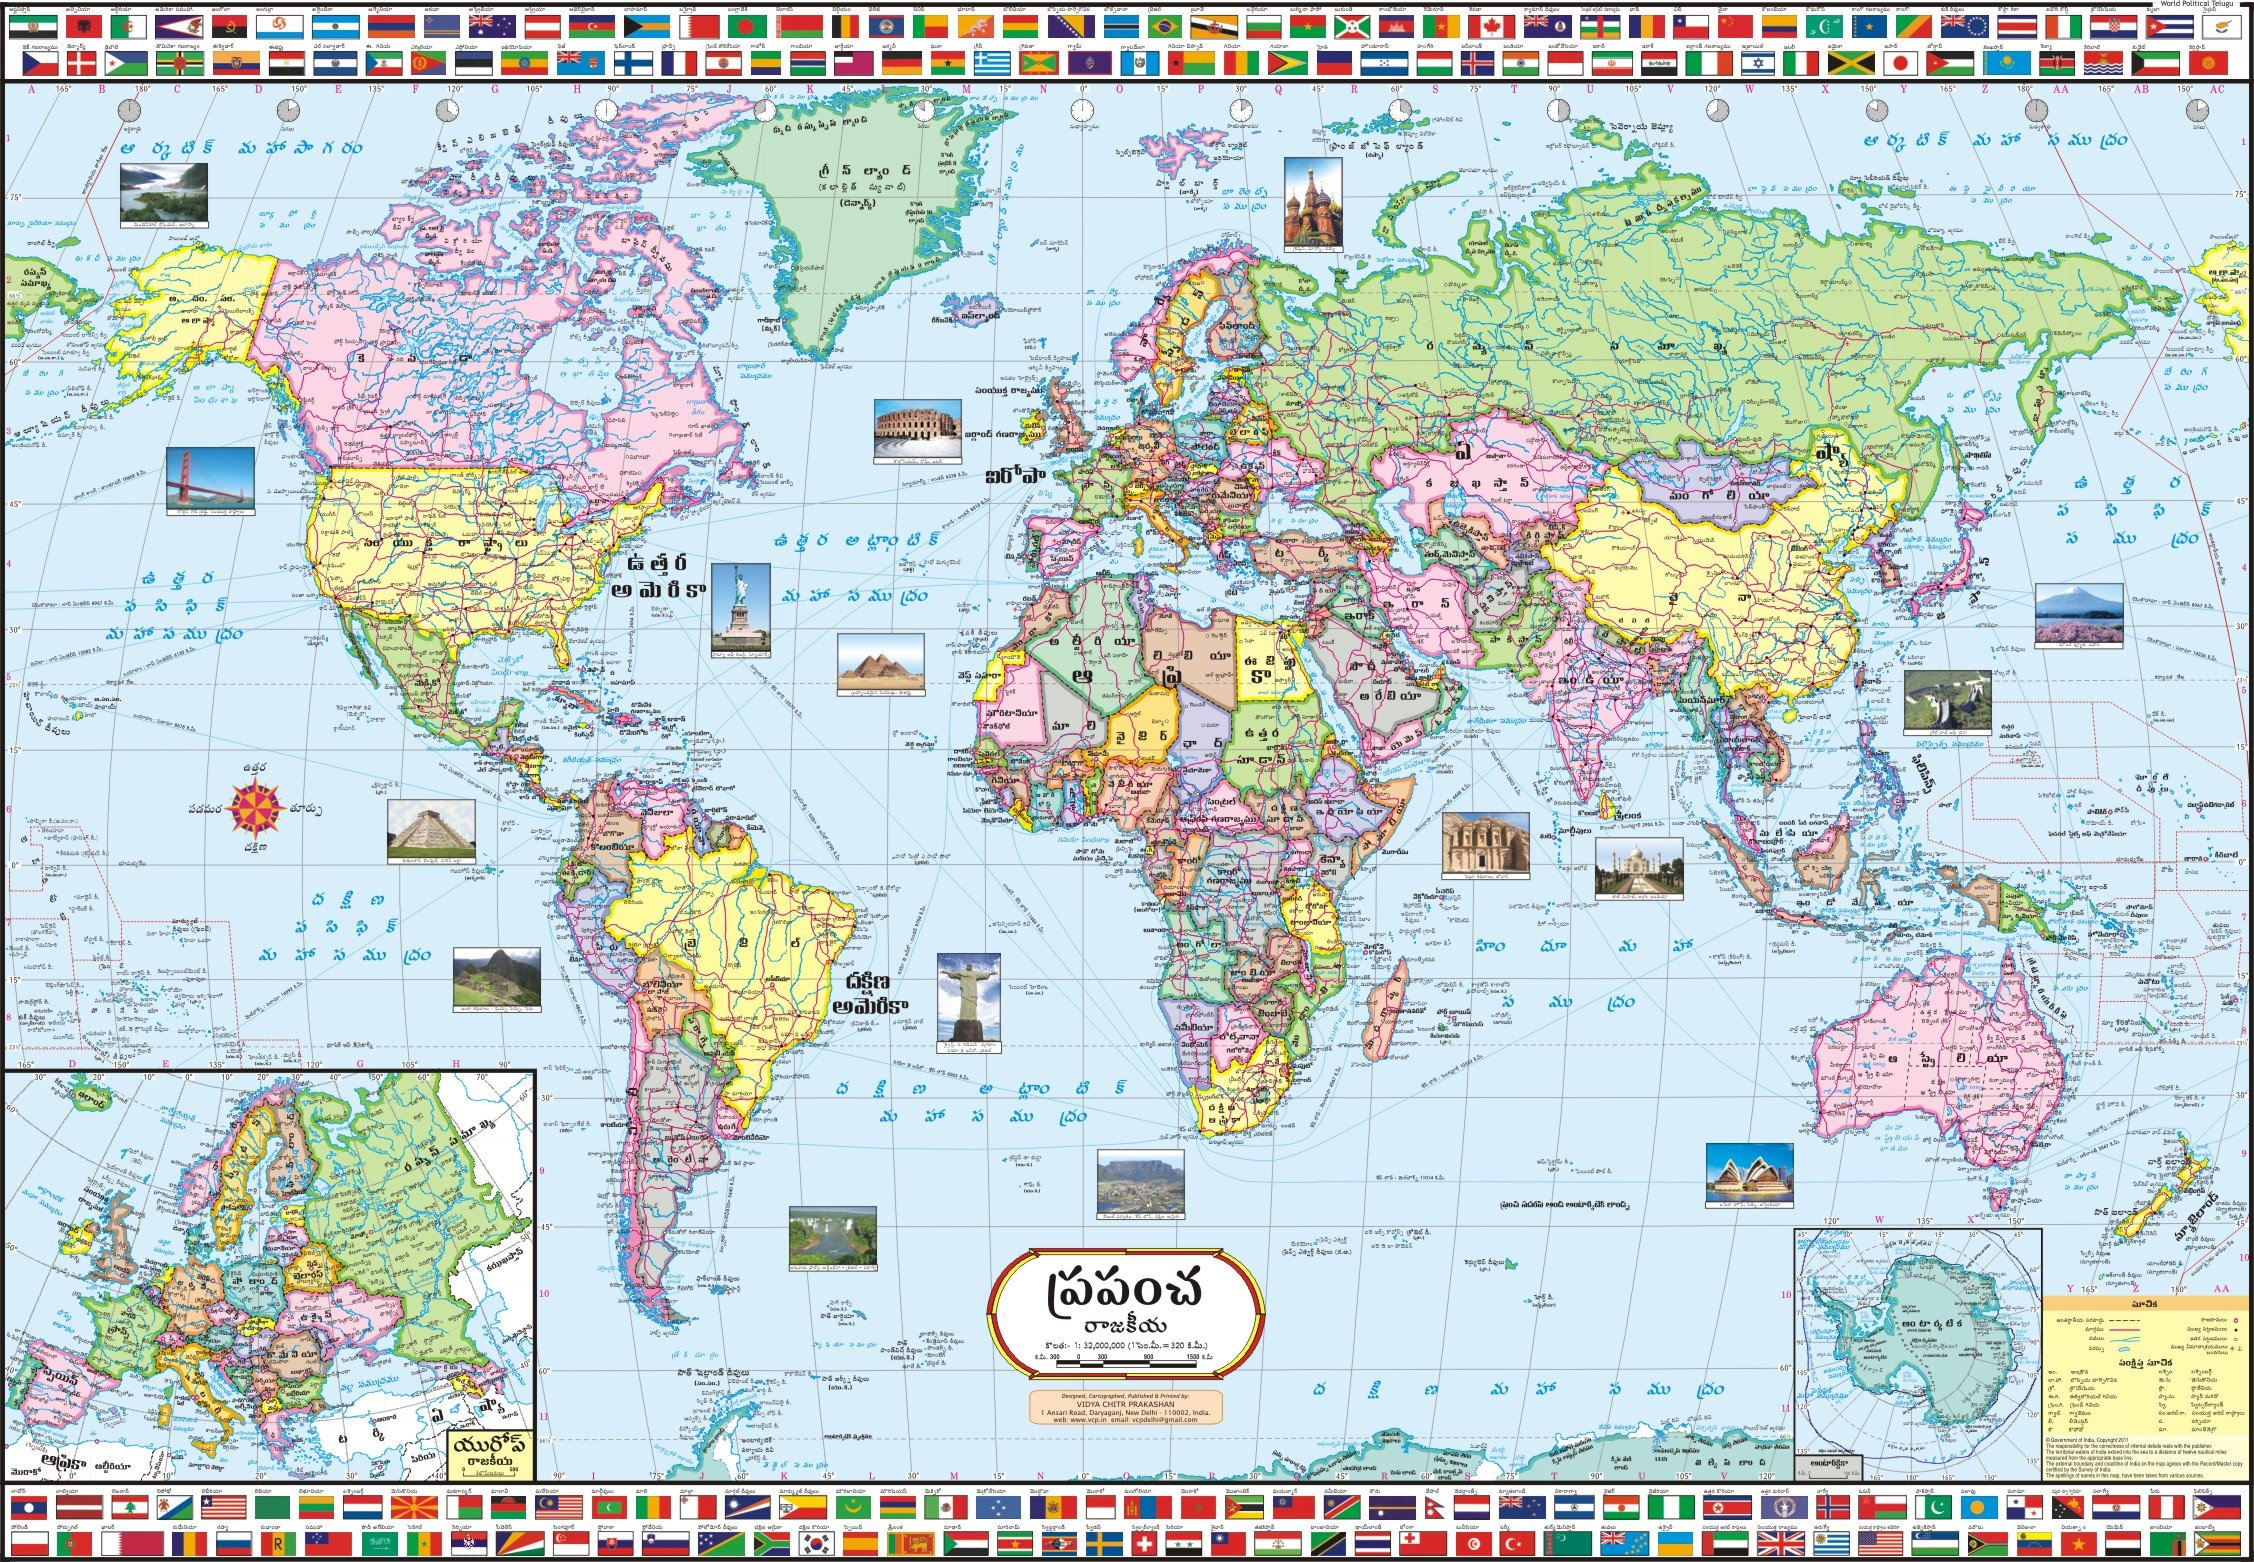 World map in german weltkarte maailman kartta world map in finnish buy world political map telugu book online at low prices in world map pdf in gumiabroncs Choice Image